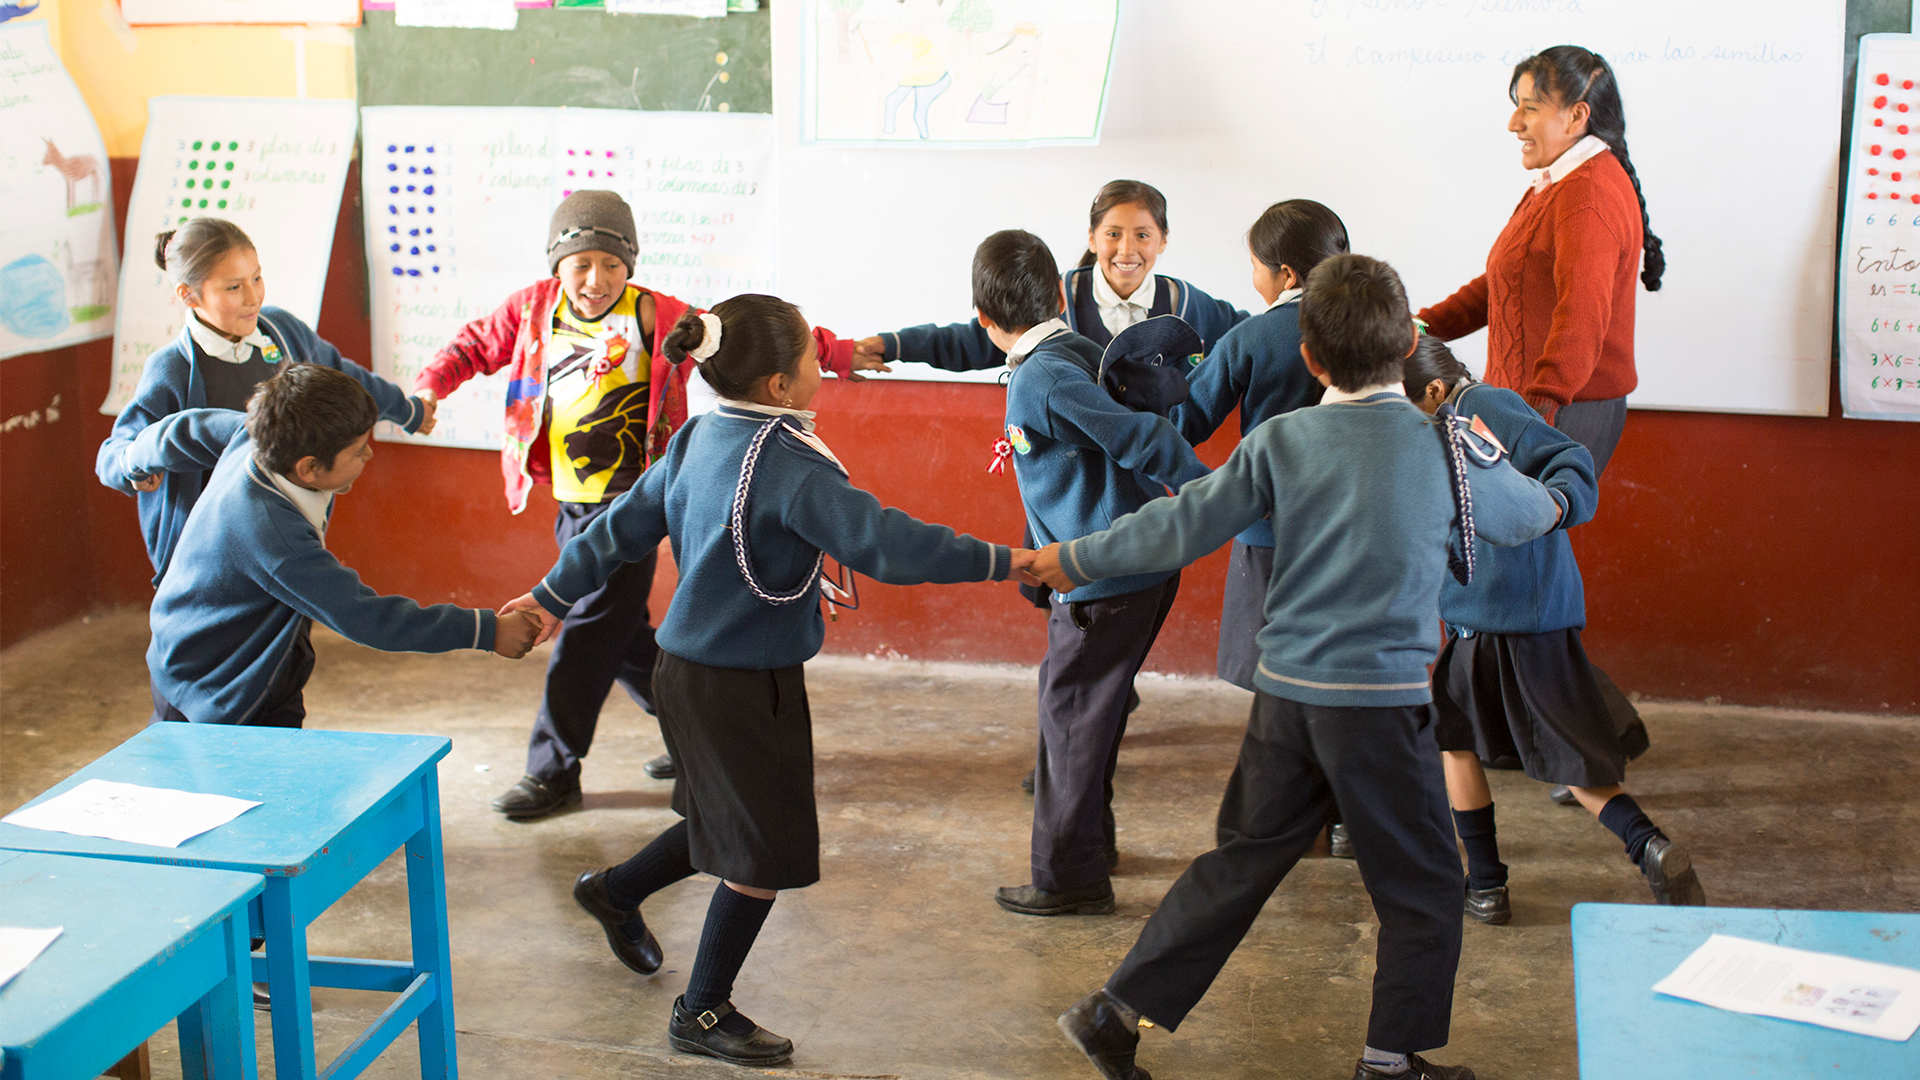 A group of children holding hands in a circle with a teacher playing a game